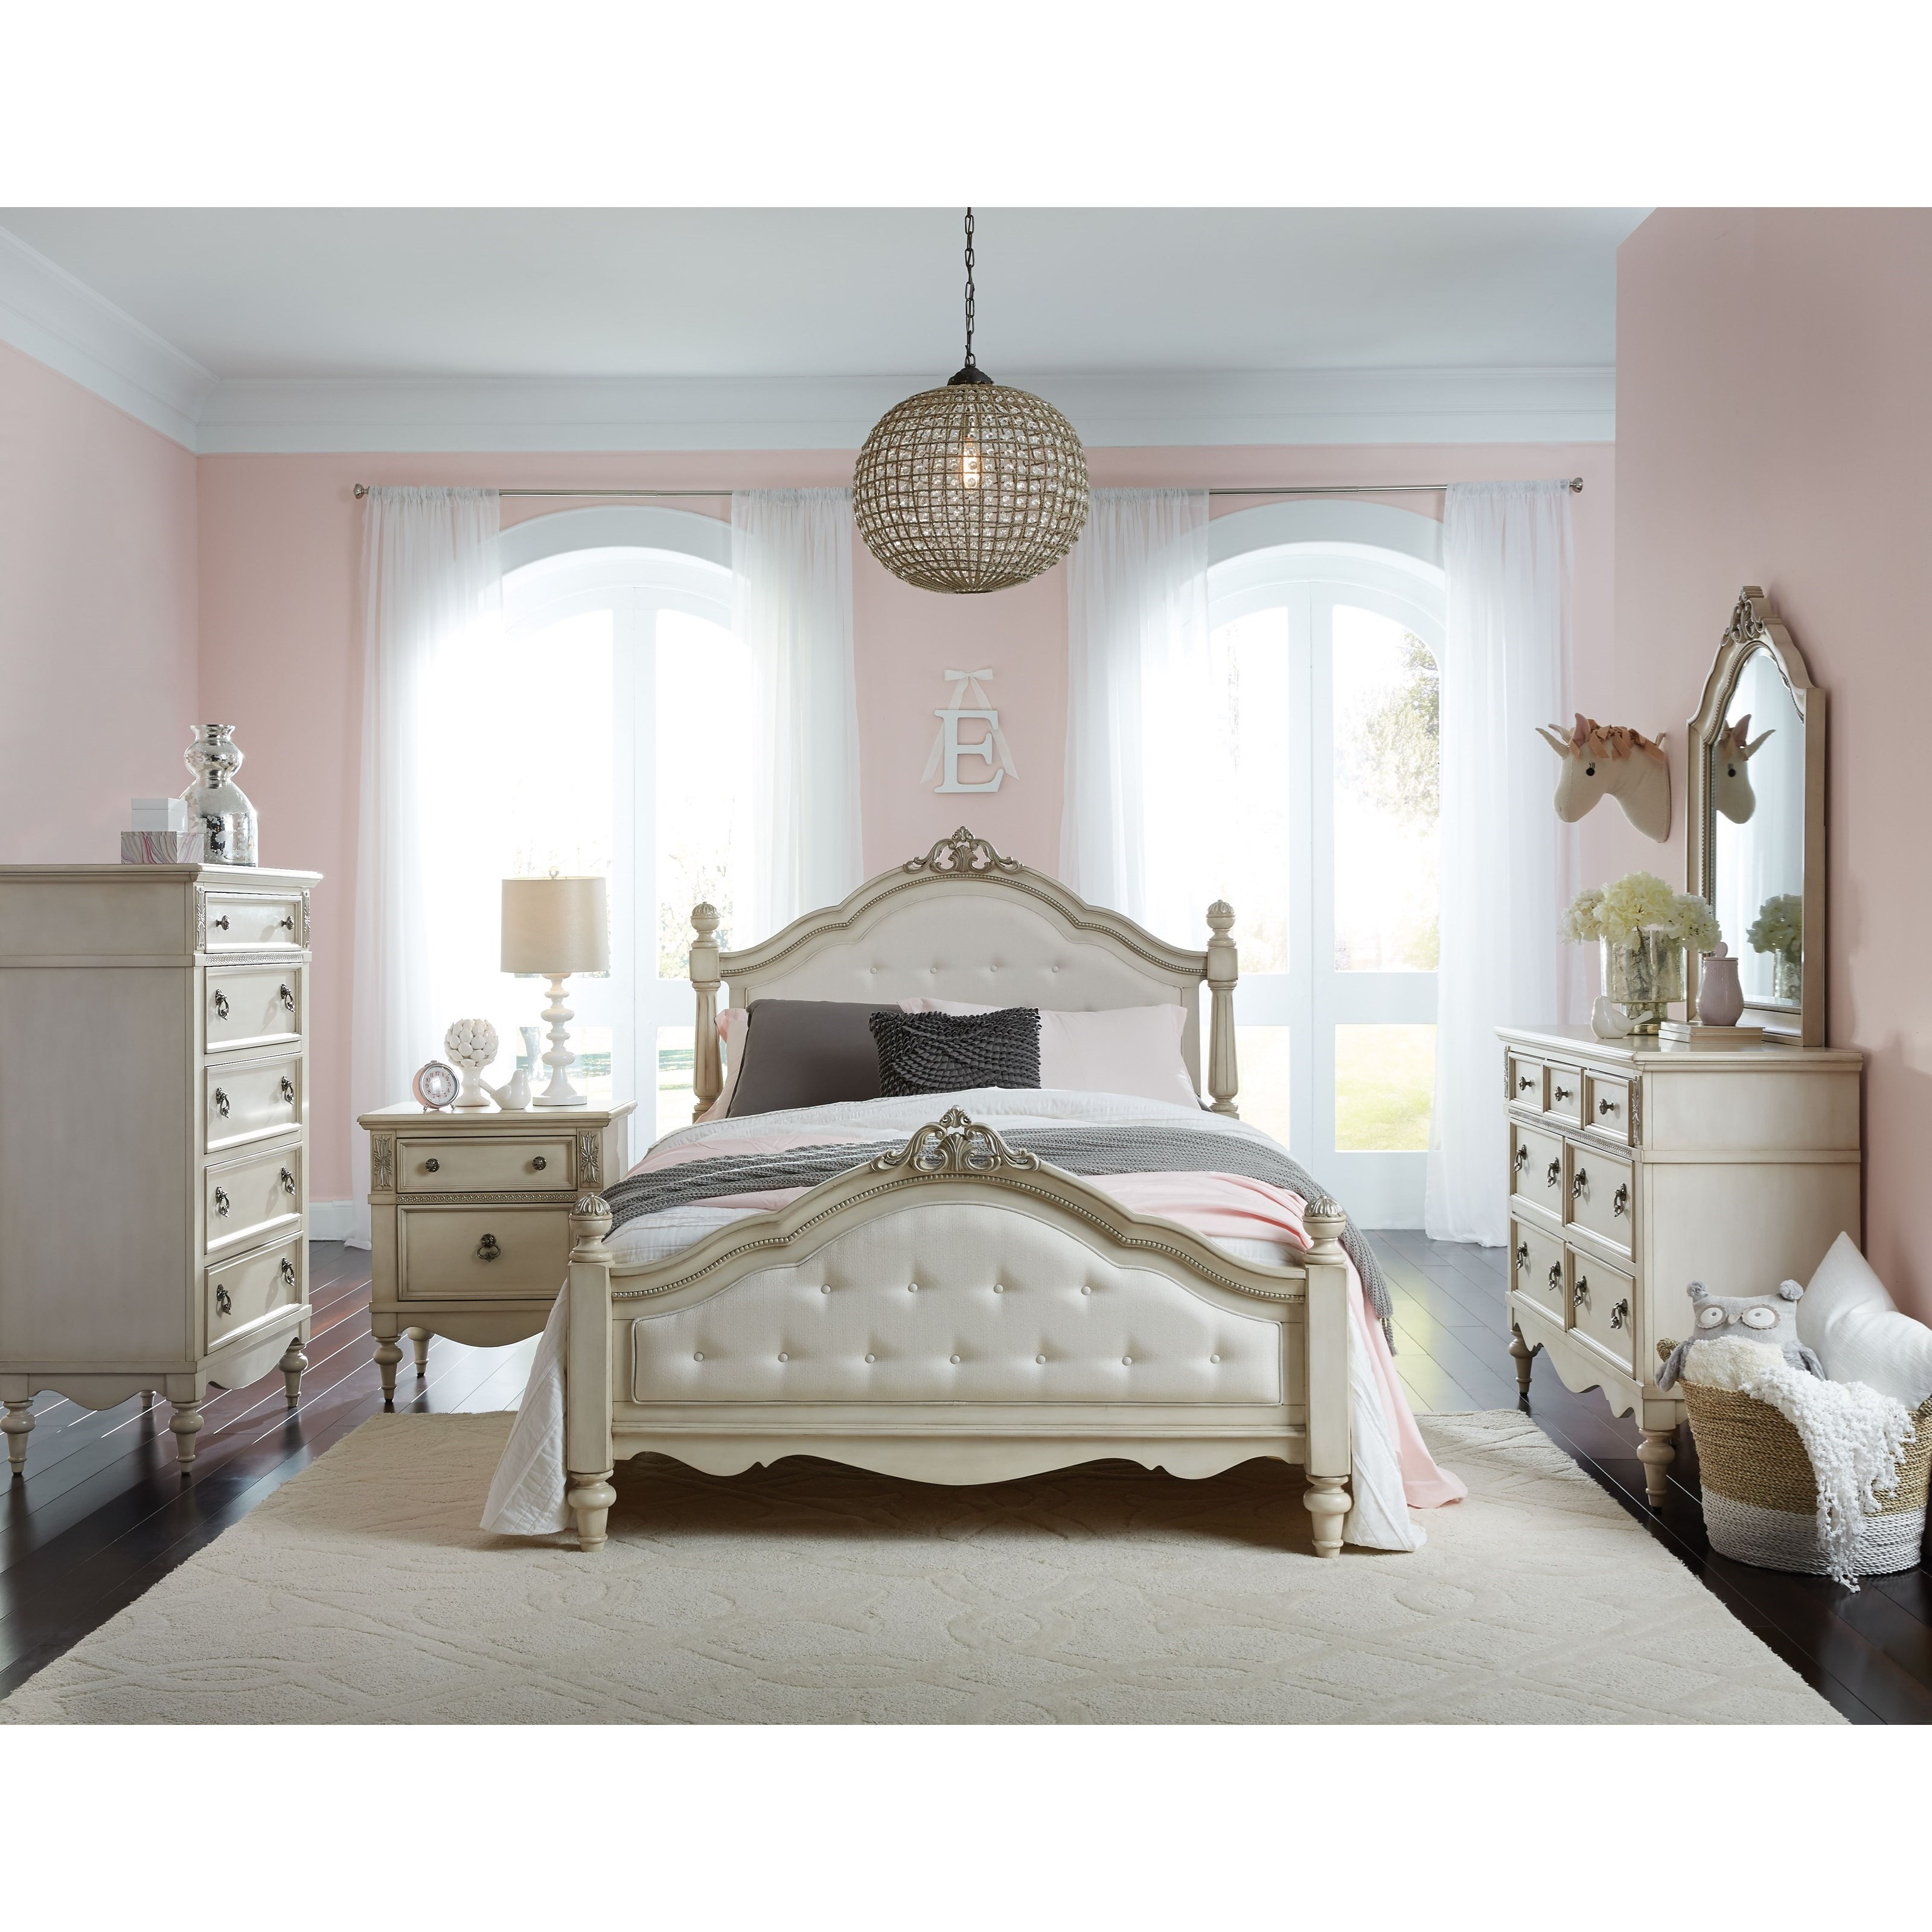 Standard Furniture Giselle Twin Bedroom Group Miskelly Furniture Bedroom Groups